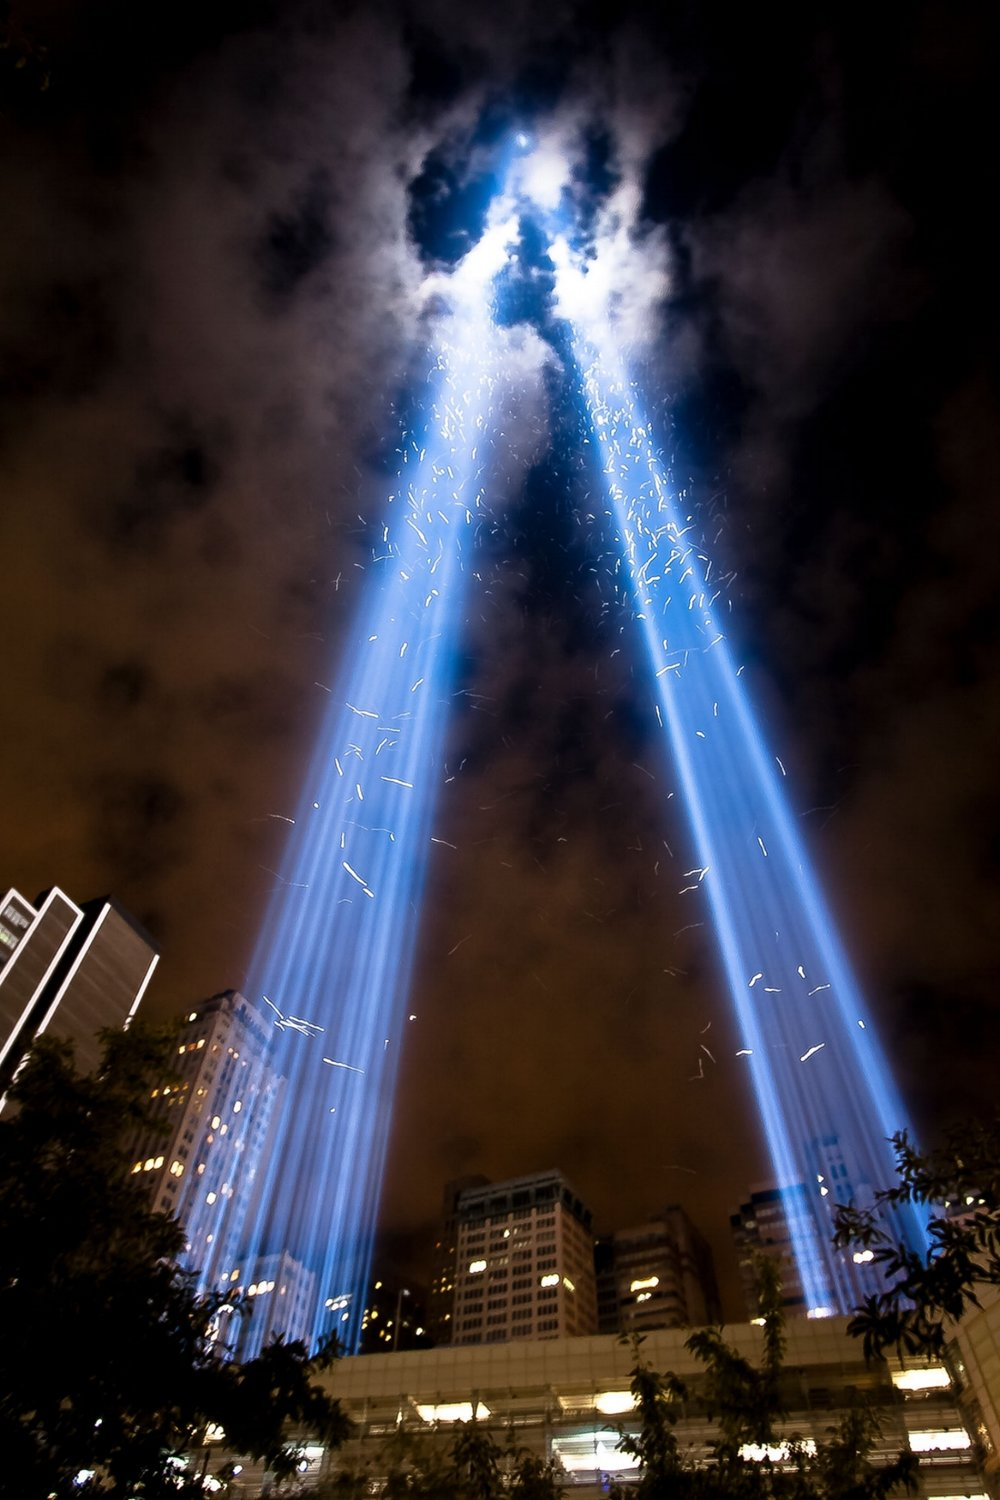 The Tribute in Light for victims of 9/11 attracts birds which remain in the columns of light, circling. Lights are turned off periodically so that birds can escape. - pc: John De Guzman/New York Times